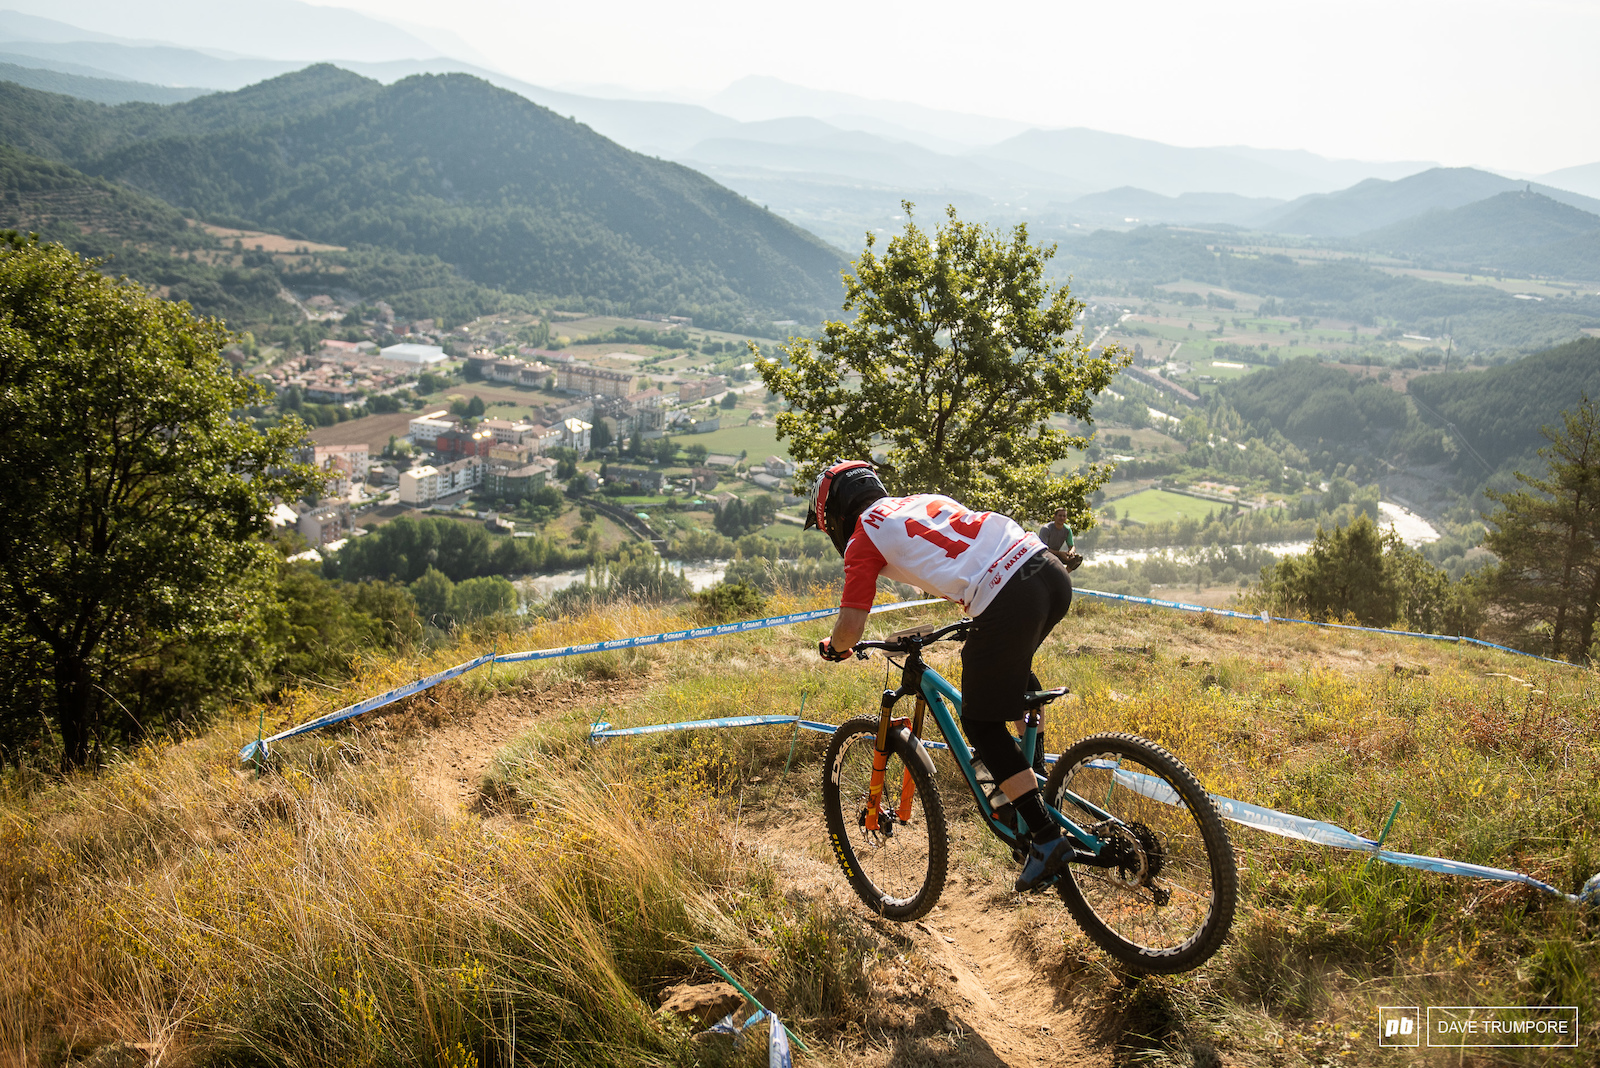 Jesse Melamed chopping corners off on the inside and gaping over ruts to find the fastest way down the tricky Stage 5.